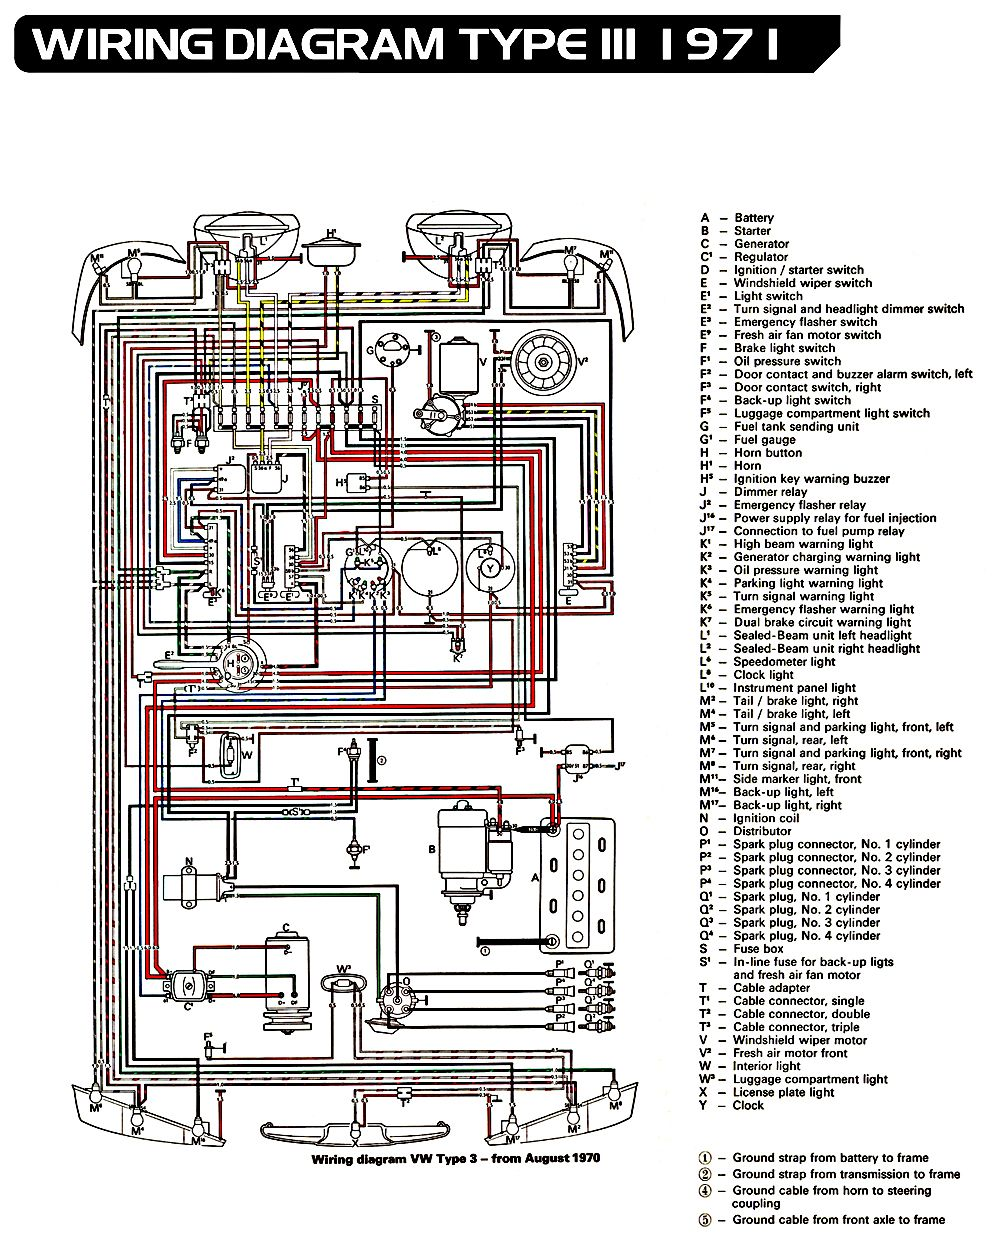 medium resolution of 1971 type 3 vw wiring diagram so simple compared to a modern ecu wiring diagram 1970 vw squareback